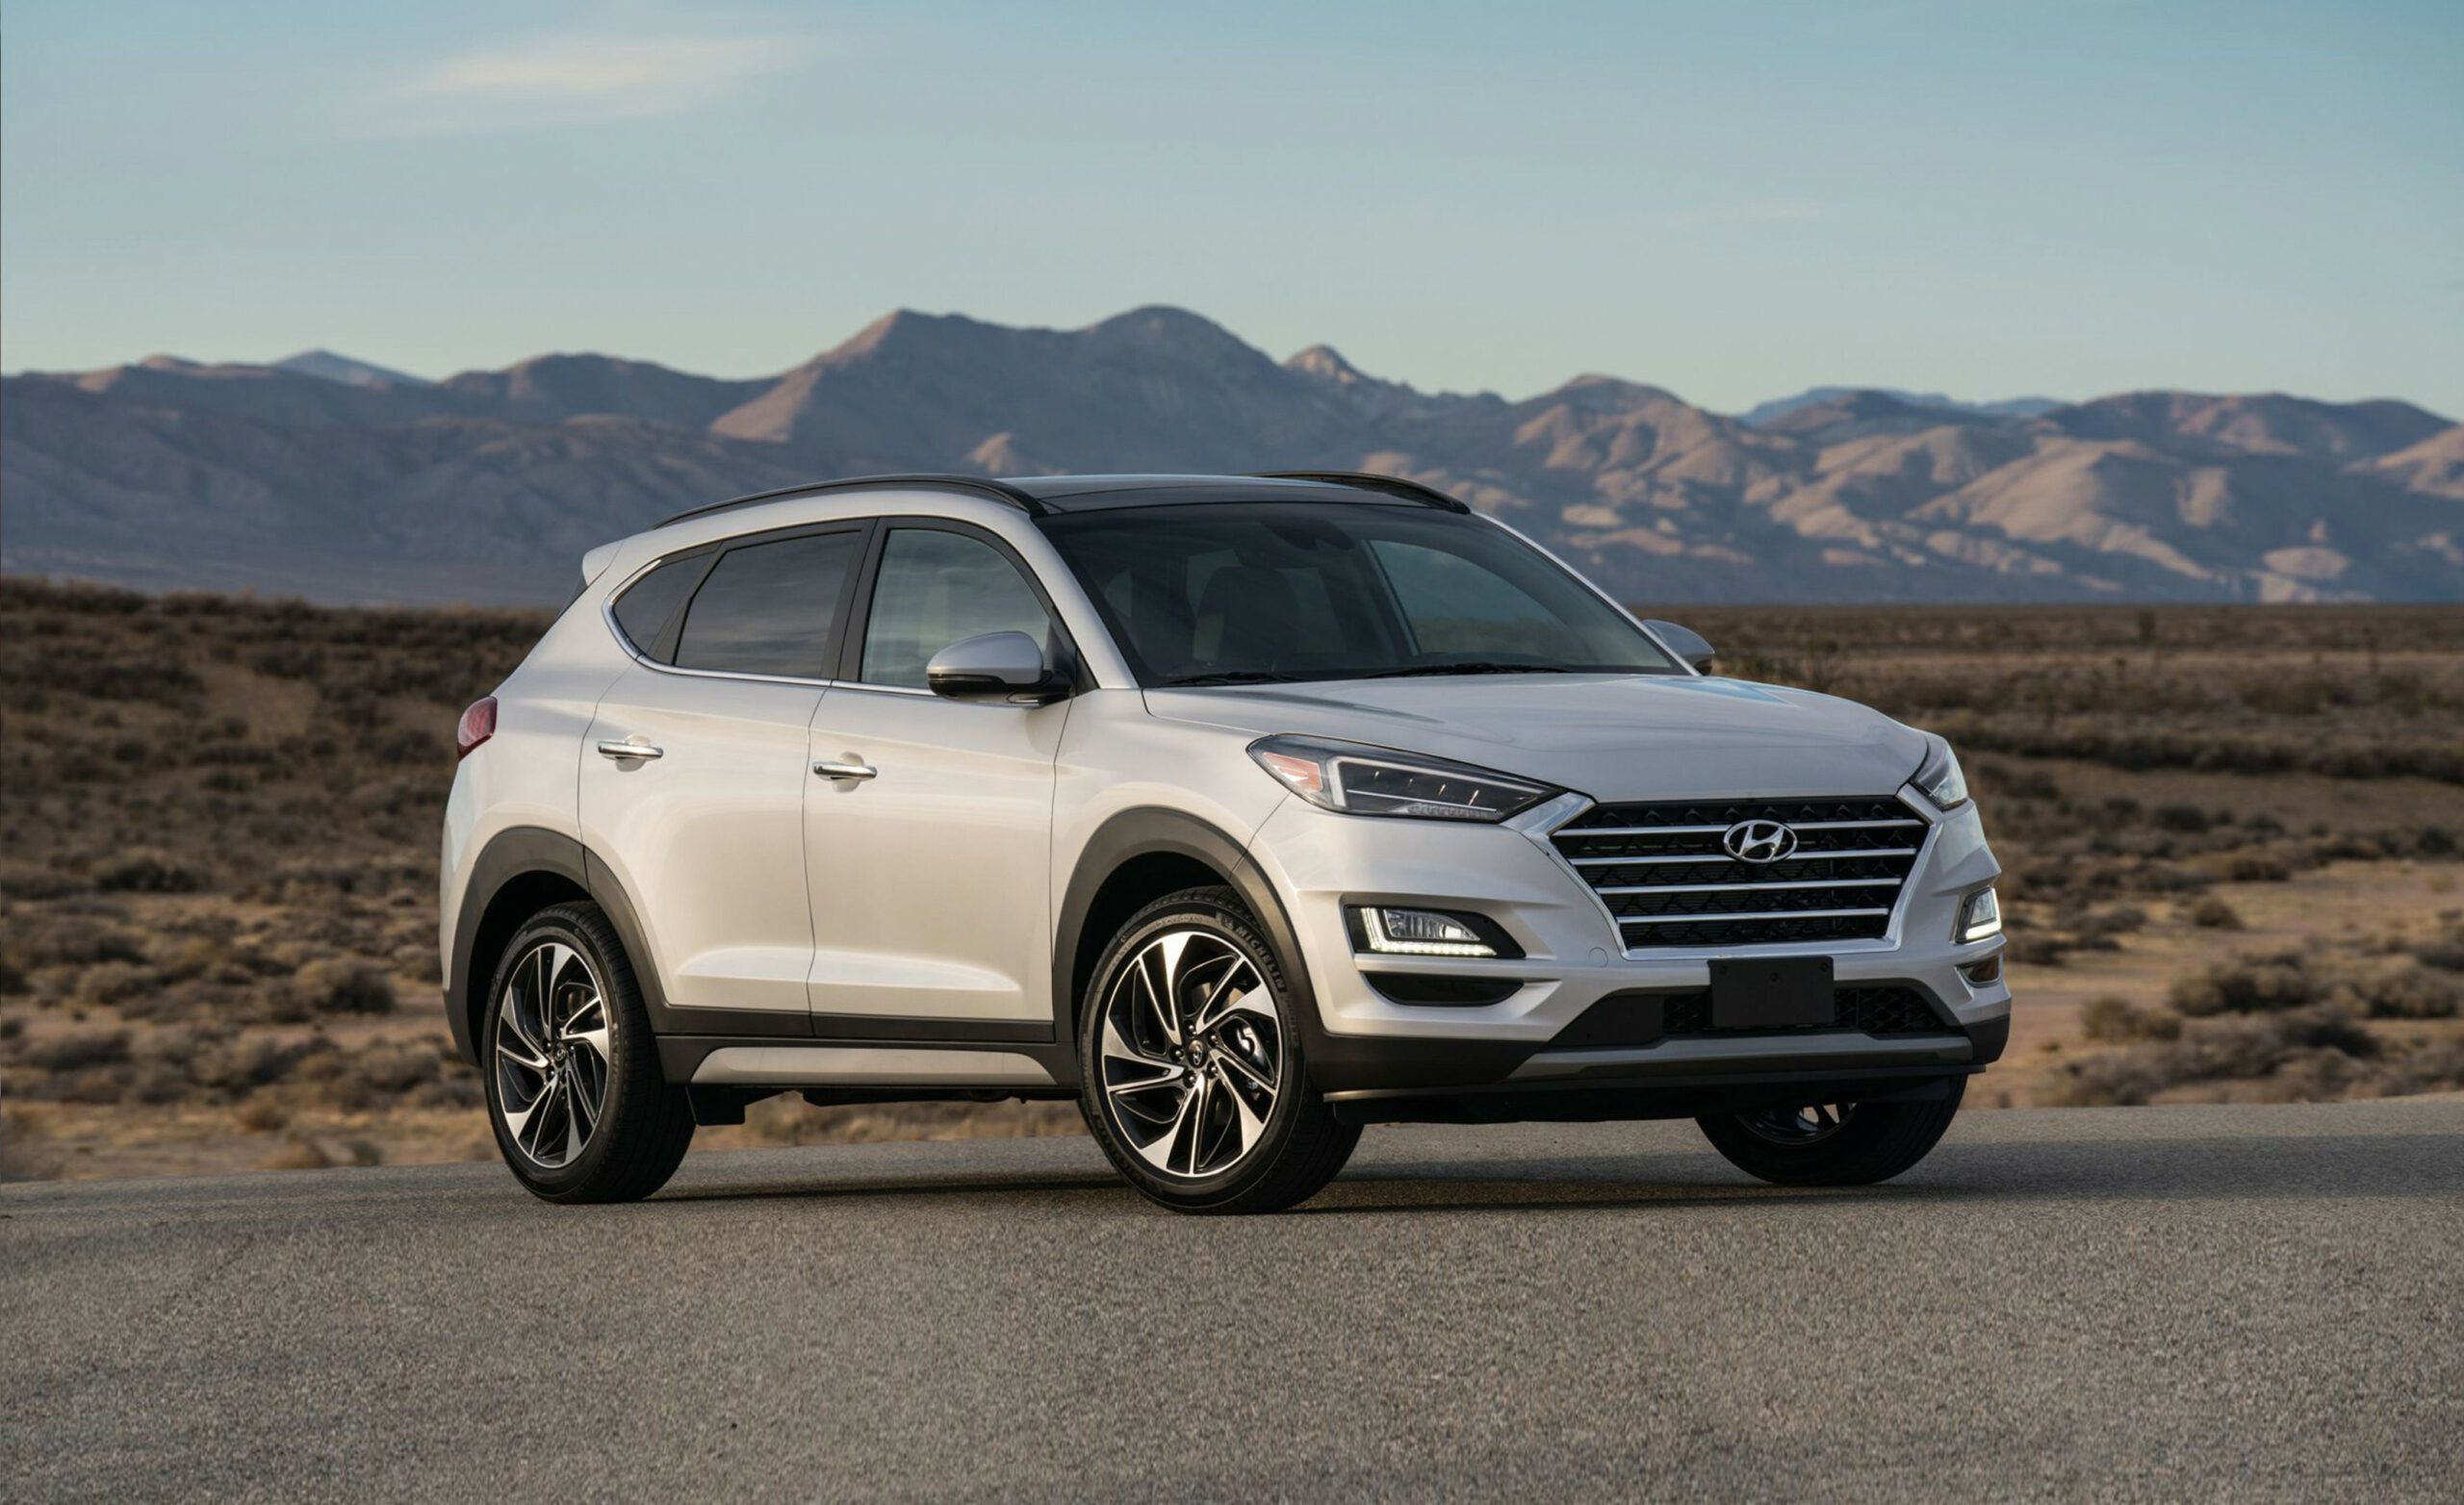 7 Hyundai Tucson Review, Pricing, and Specs